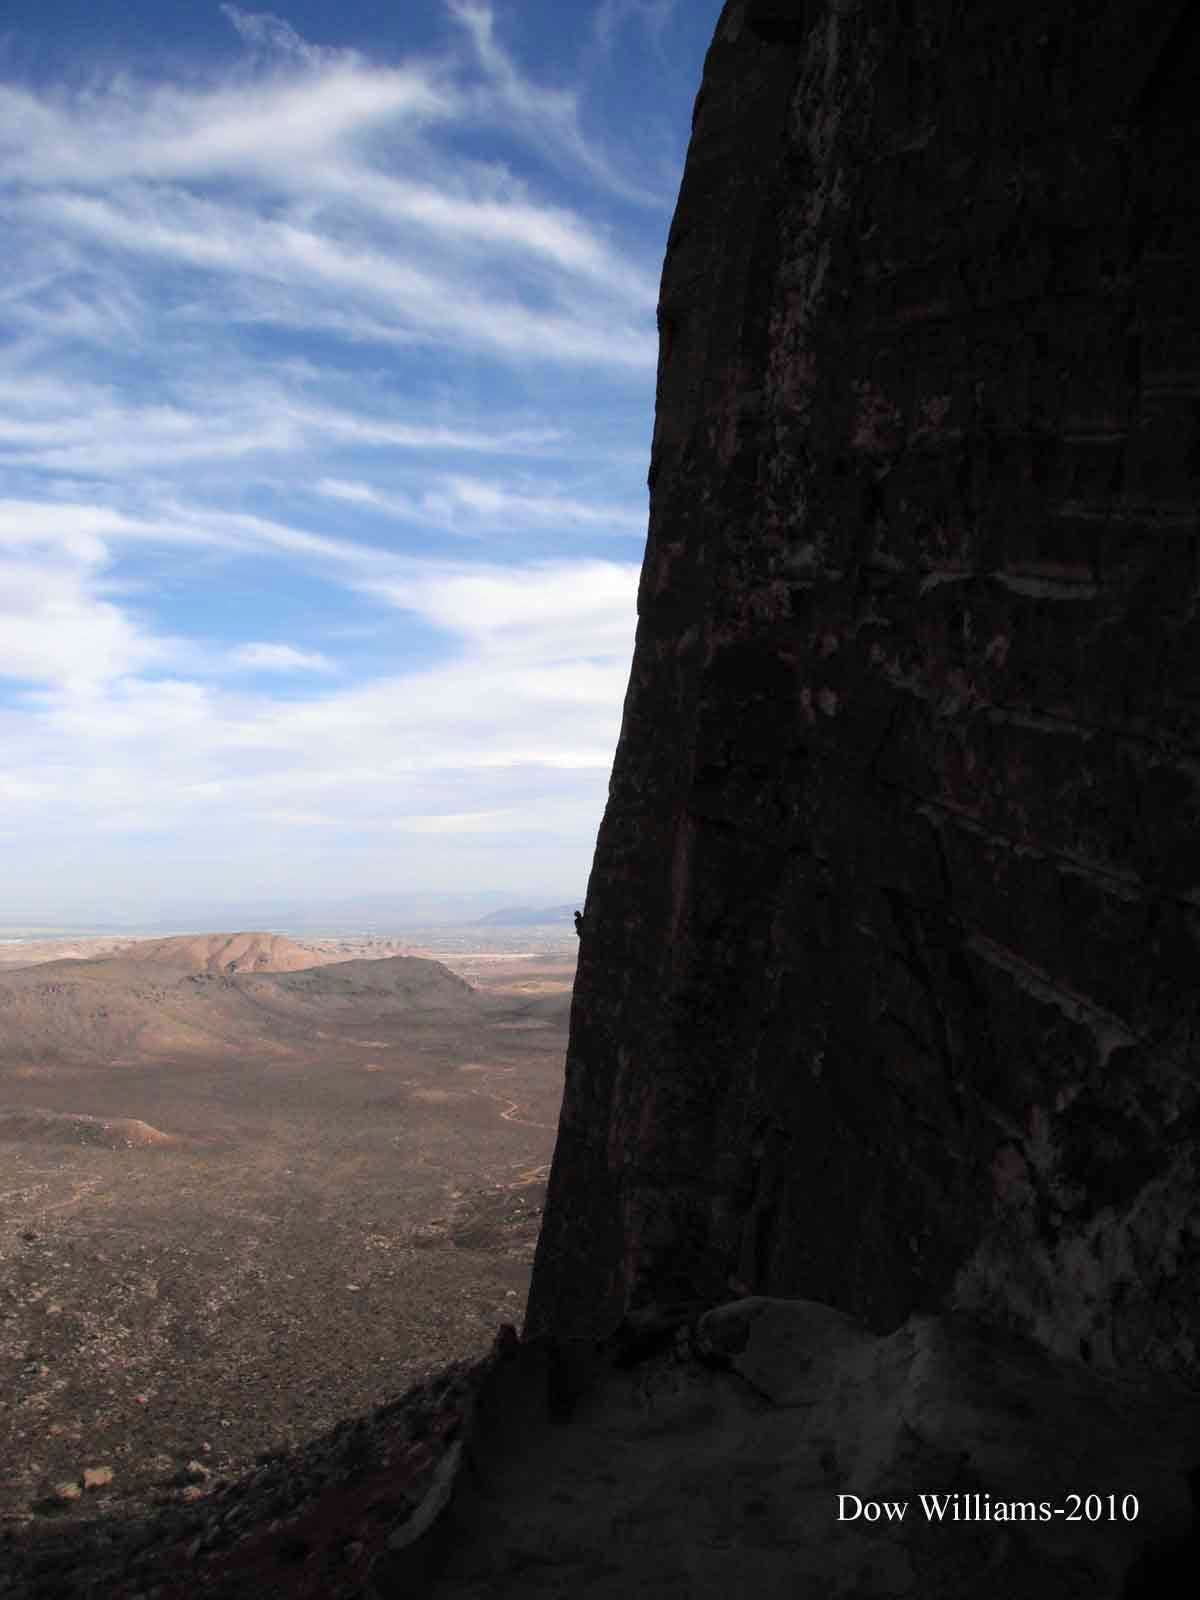 Amber, 5.10c, 4 Pitches